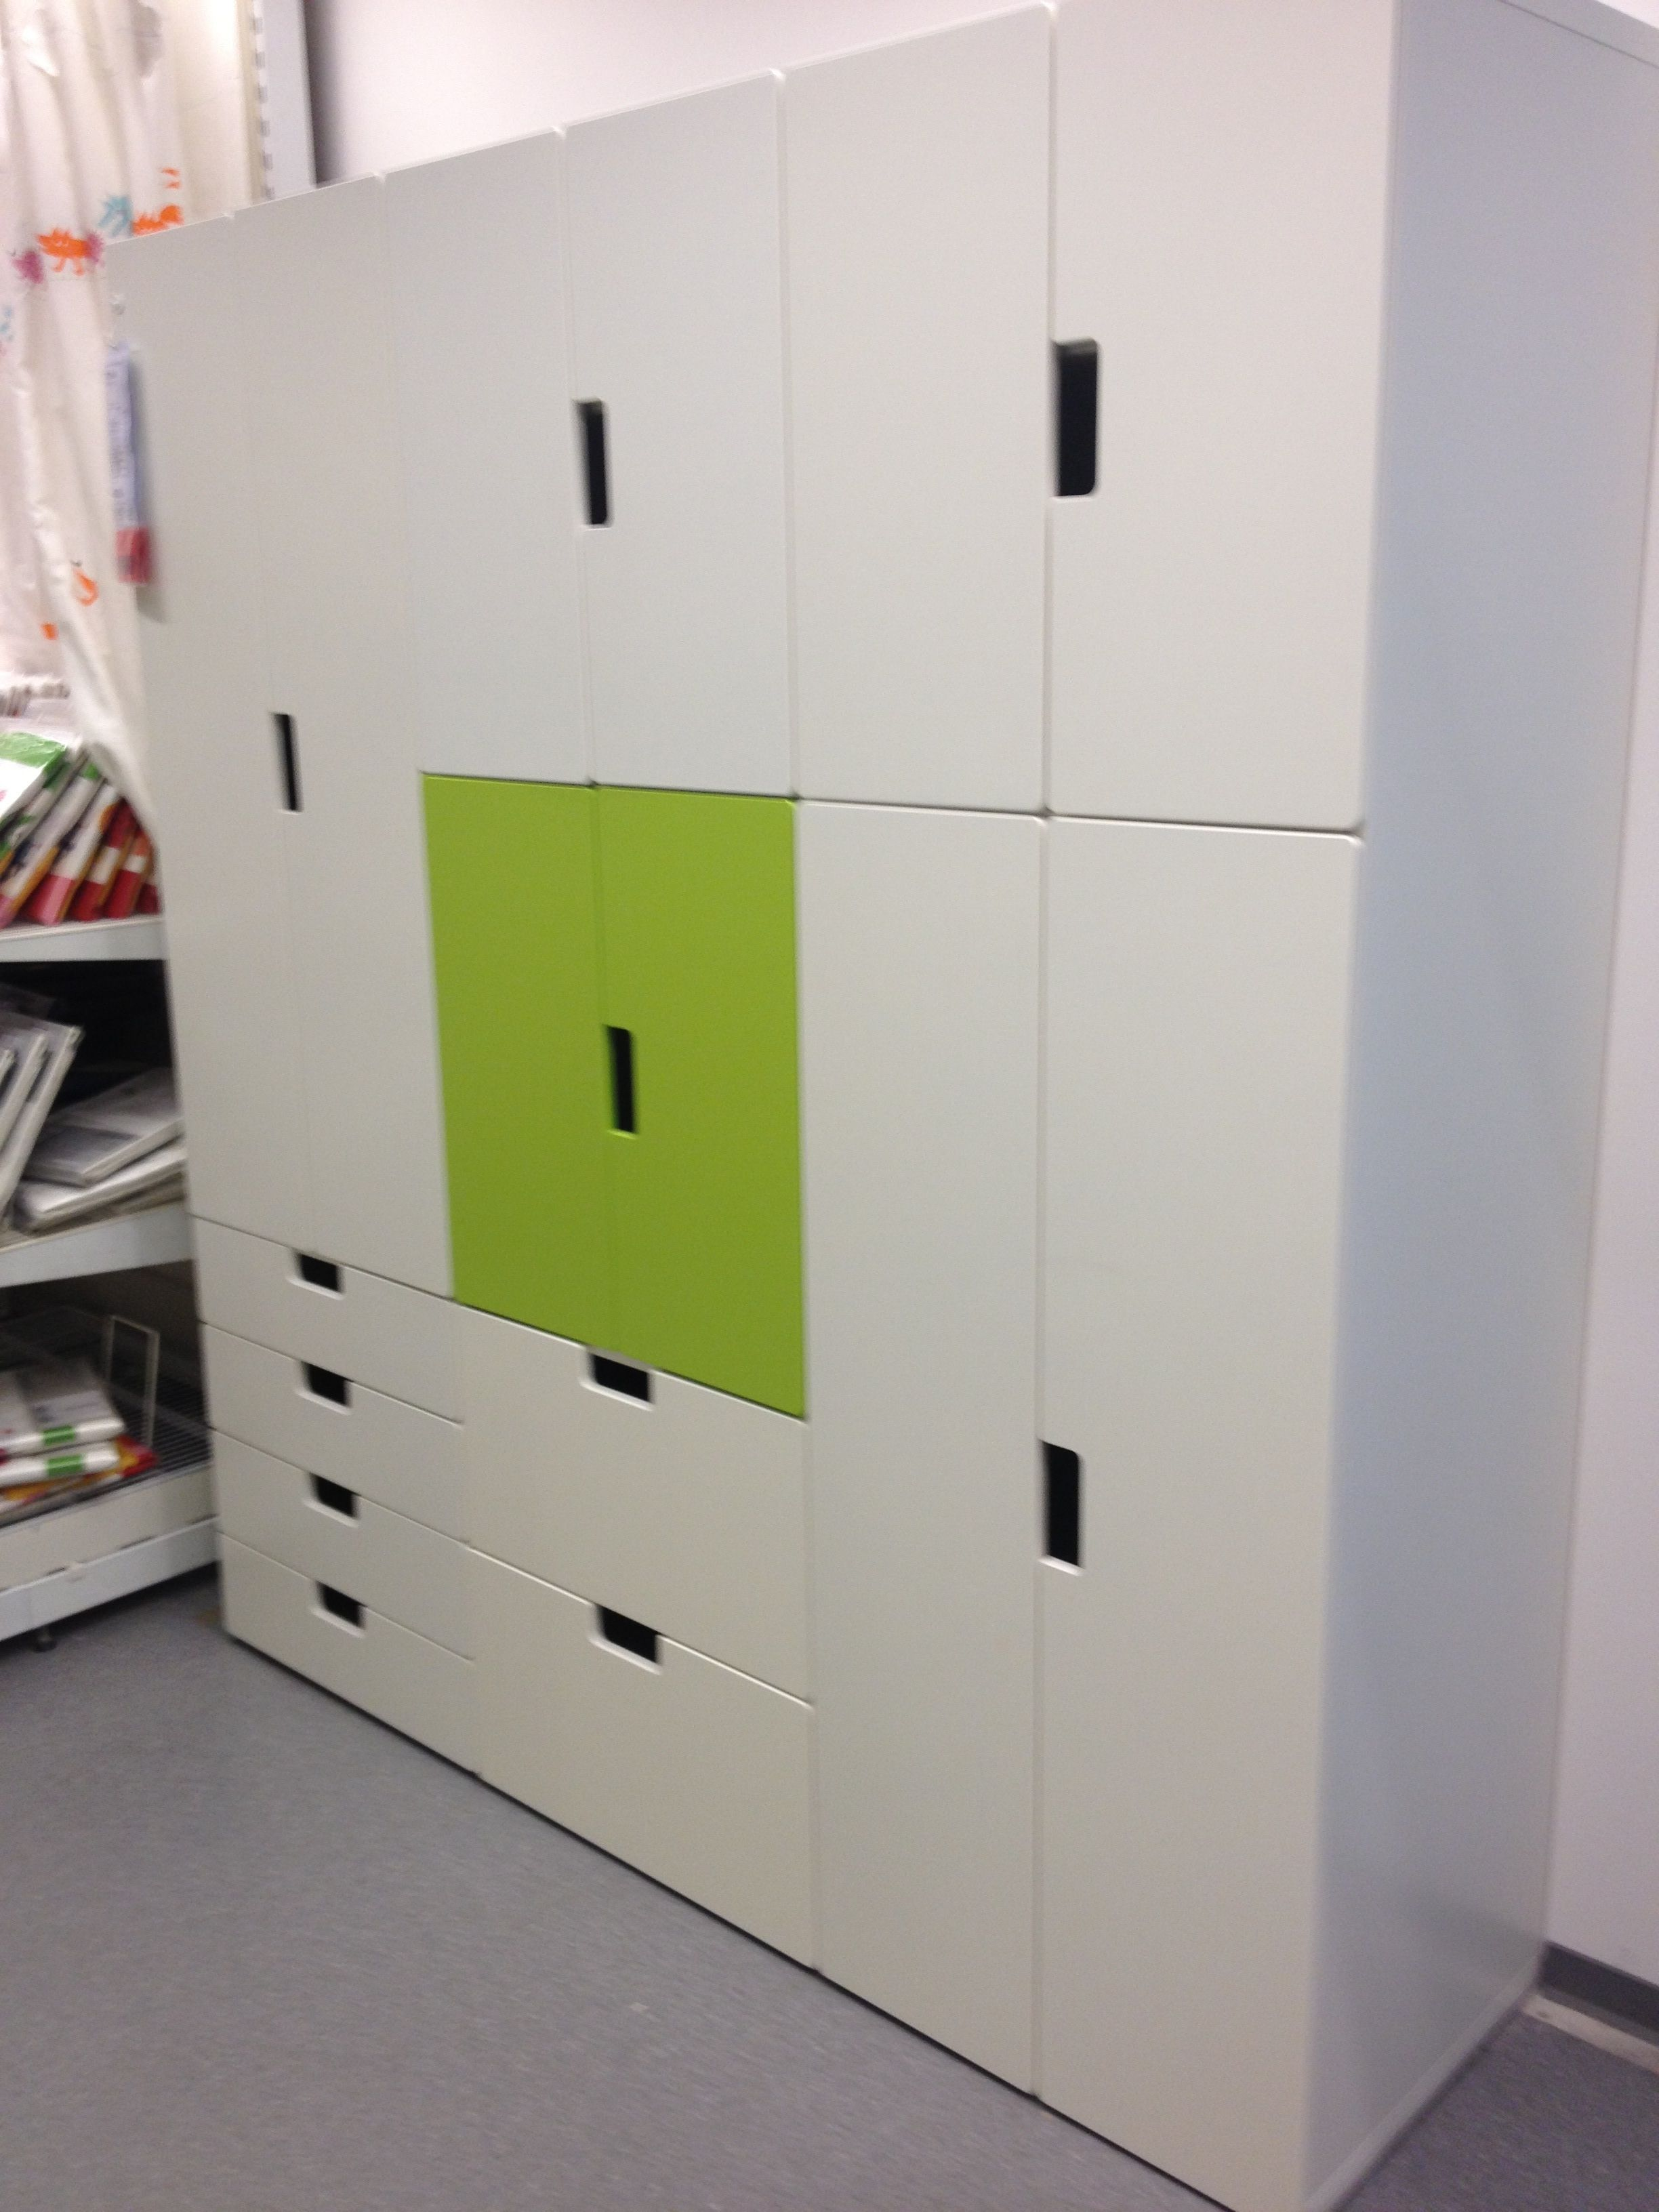 Ikea Toy Storage Ikea Stuva Cabinets To Store Toys Organization For The